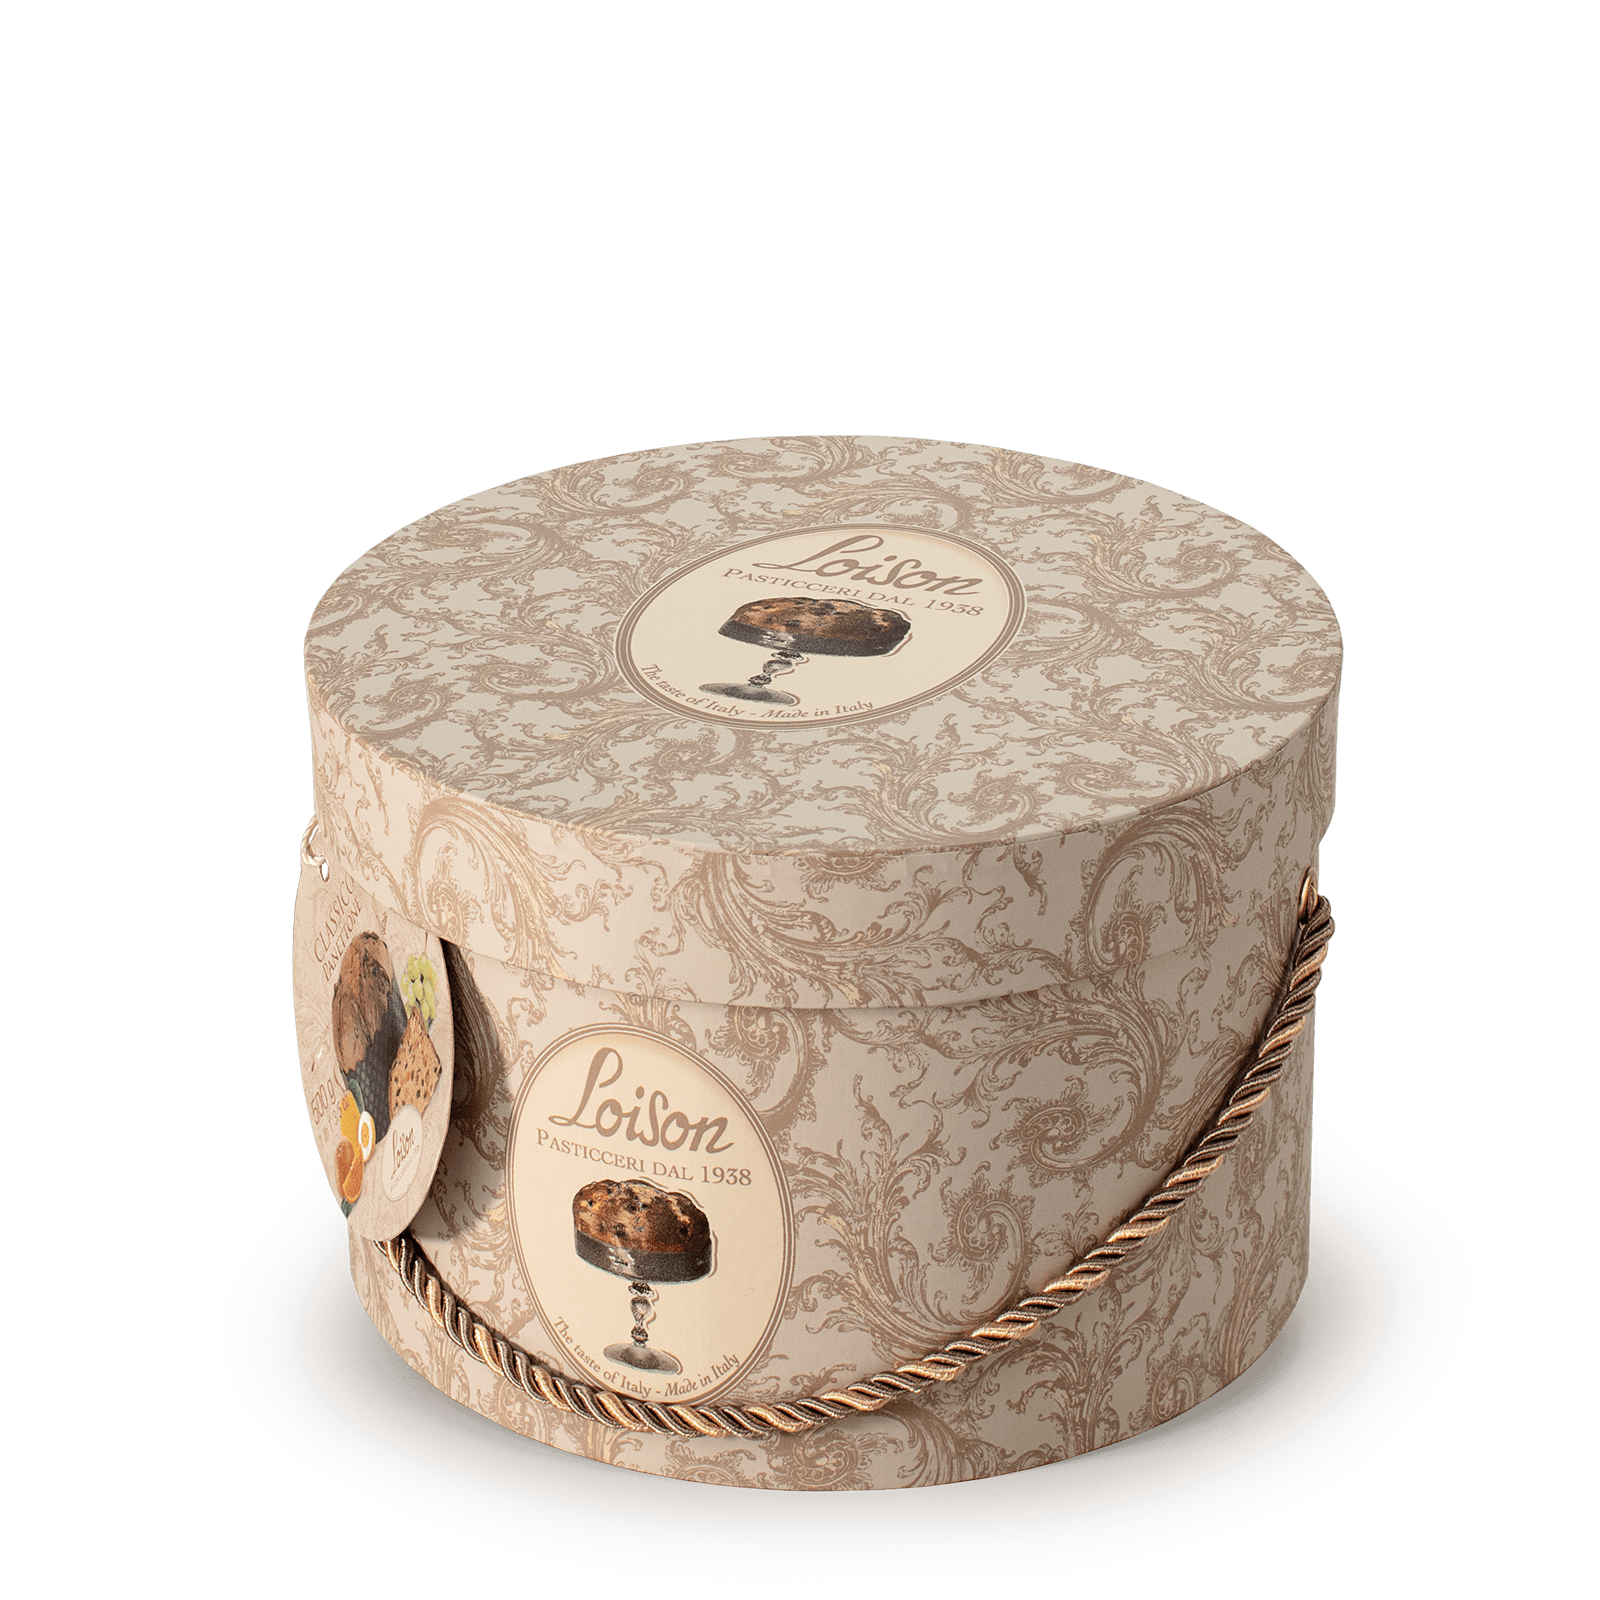 Traditional Artisan Italian Panettone in a hat box Loison